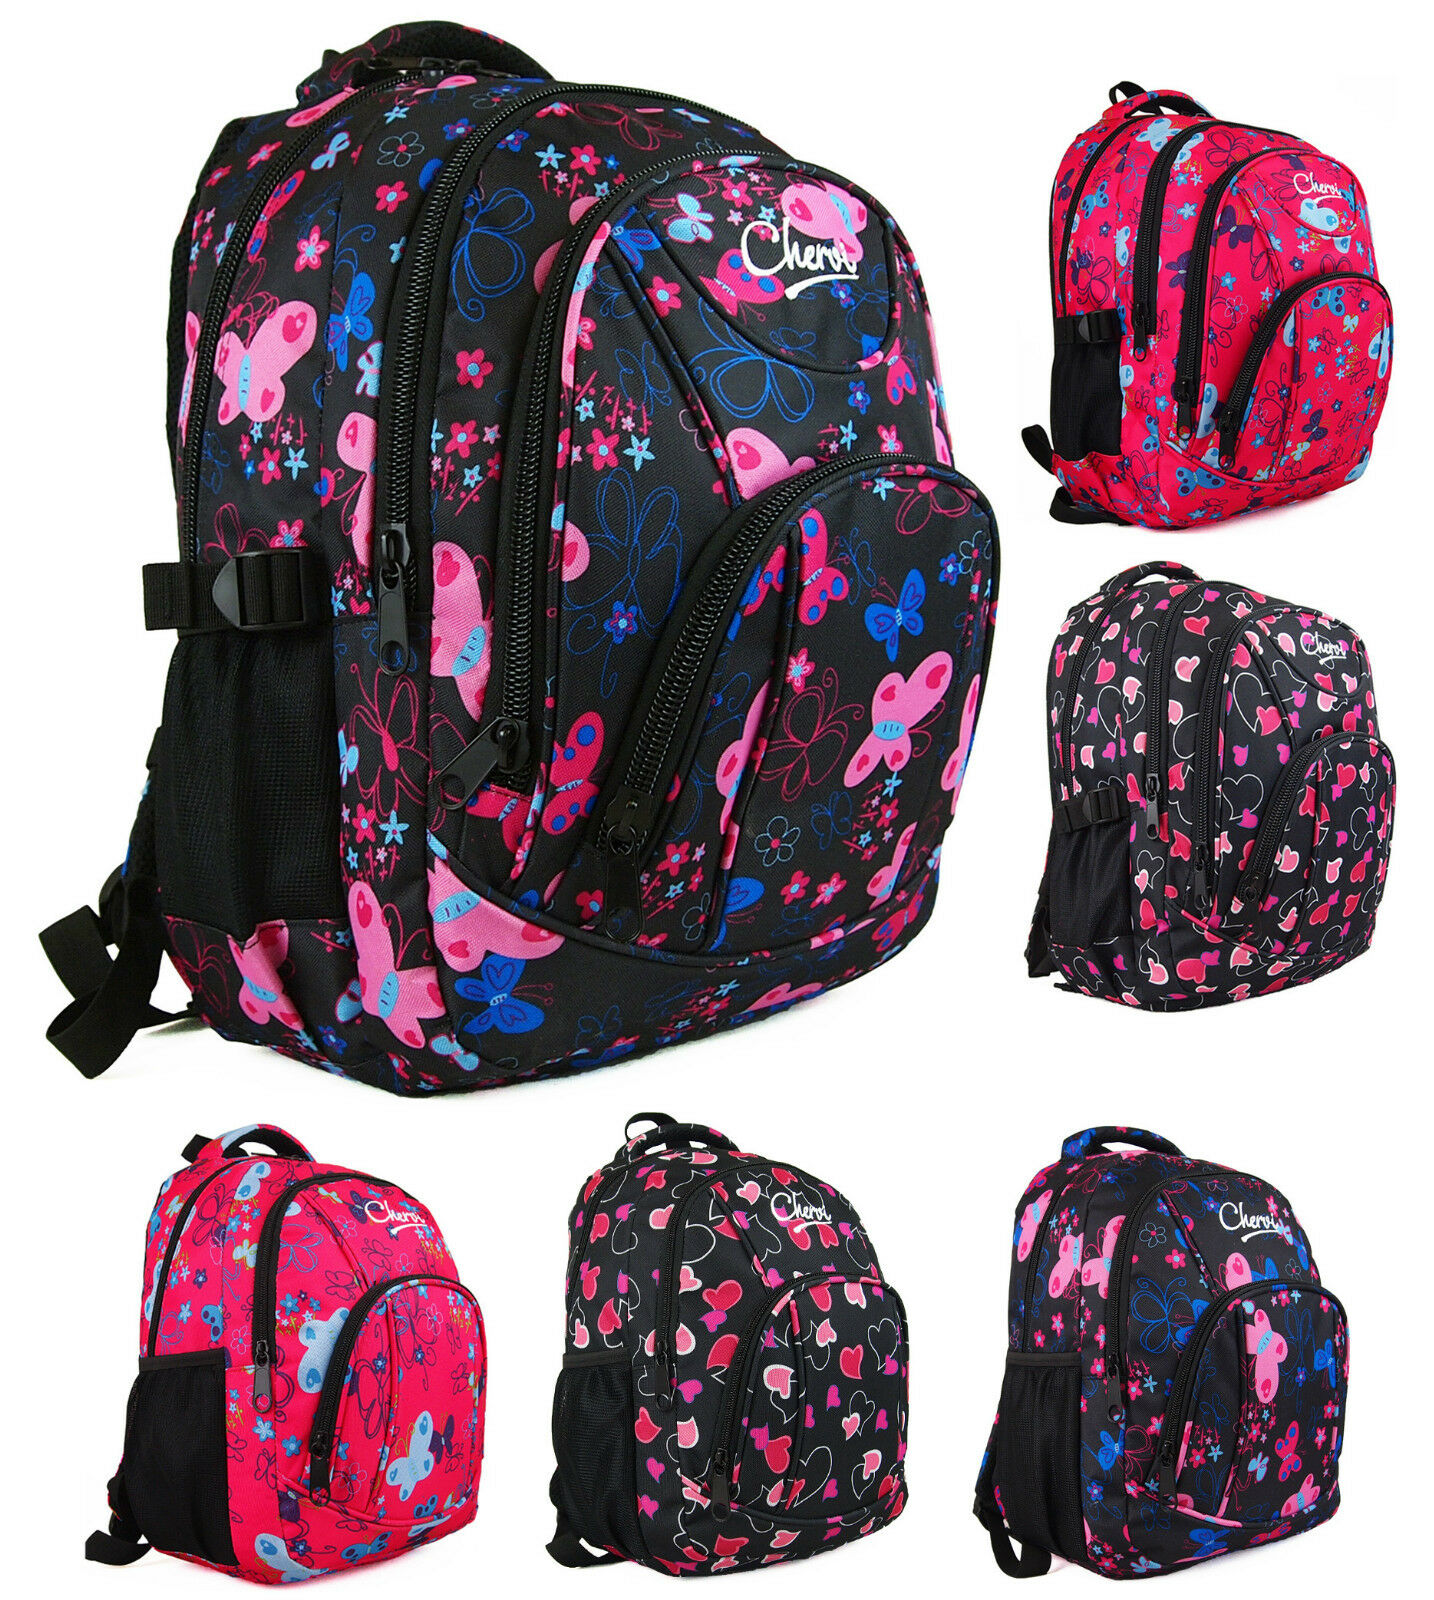 Cute school bags for college students - Girls Chervi Hand Luggage School Cabin Backpack Rucksack Bag Ebay